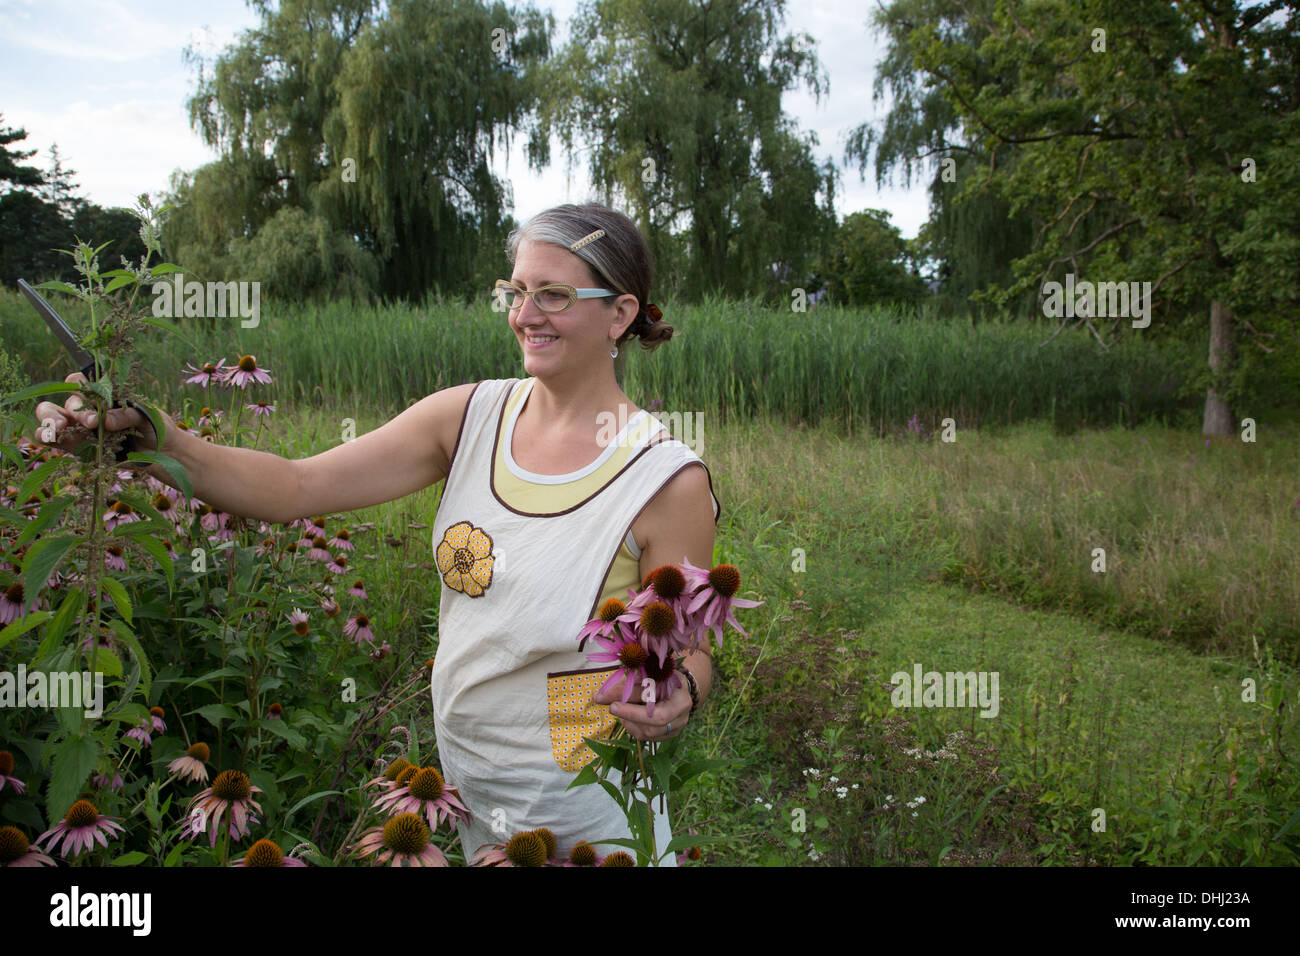 Woman picking echinacea on herb farm - Stock Image